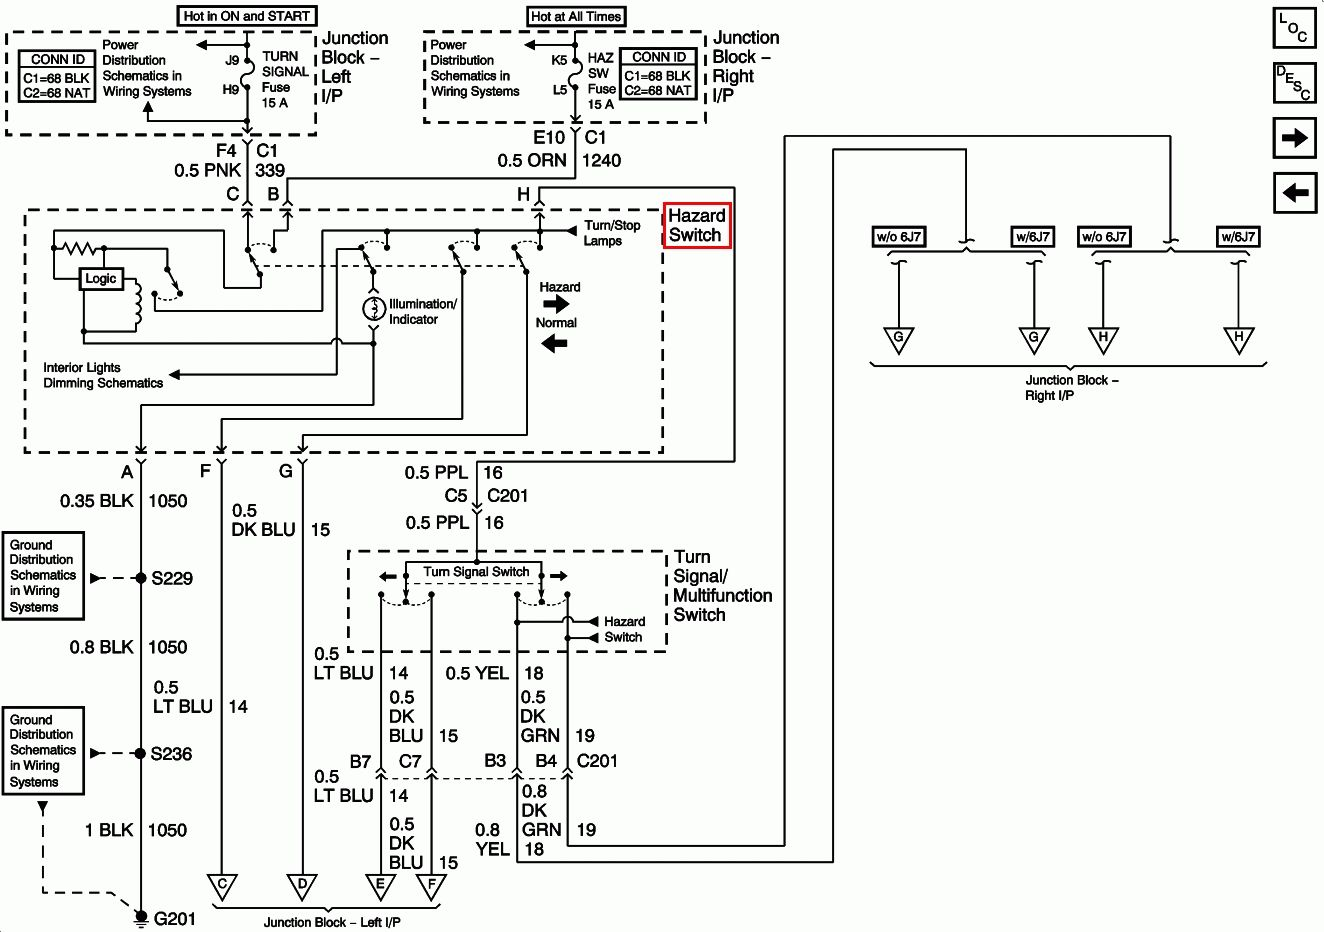 wiring diagram for 2001 chevy impala wiring diagram article review 2001 chevy impala turn signal wiring [ 1324 x 932 Pixel ]